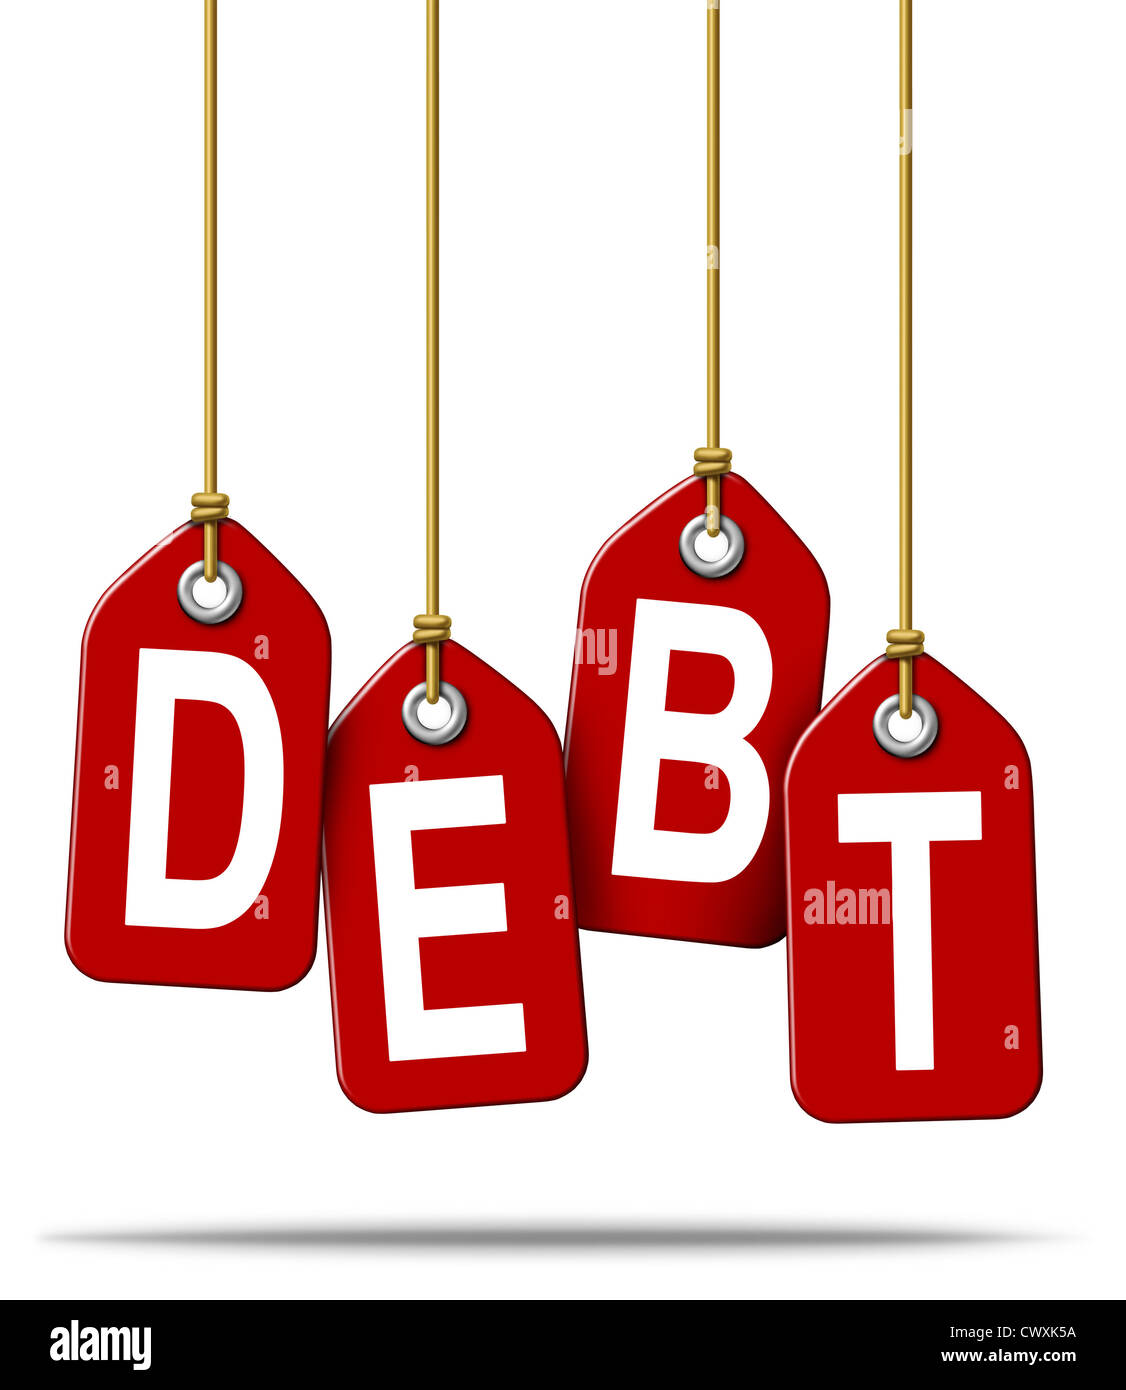 Financial debt money problems concept and over spending using credit cards and borrowing institutions resulting - Stock Image